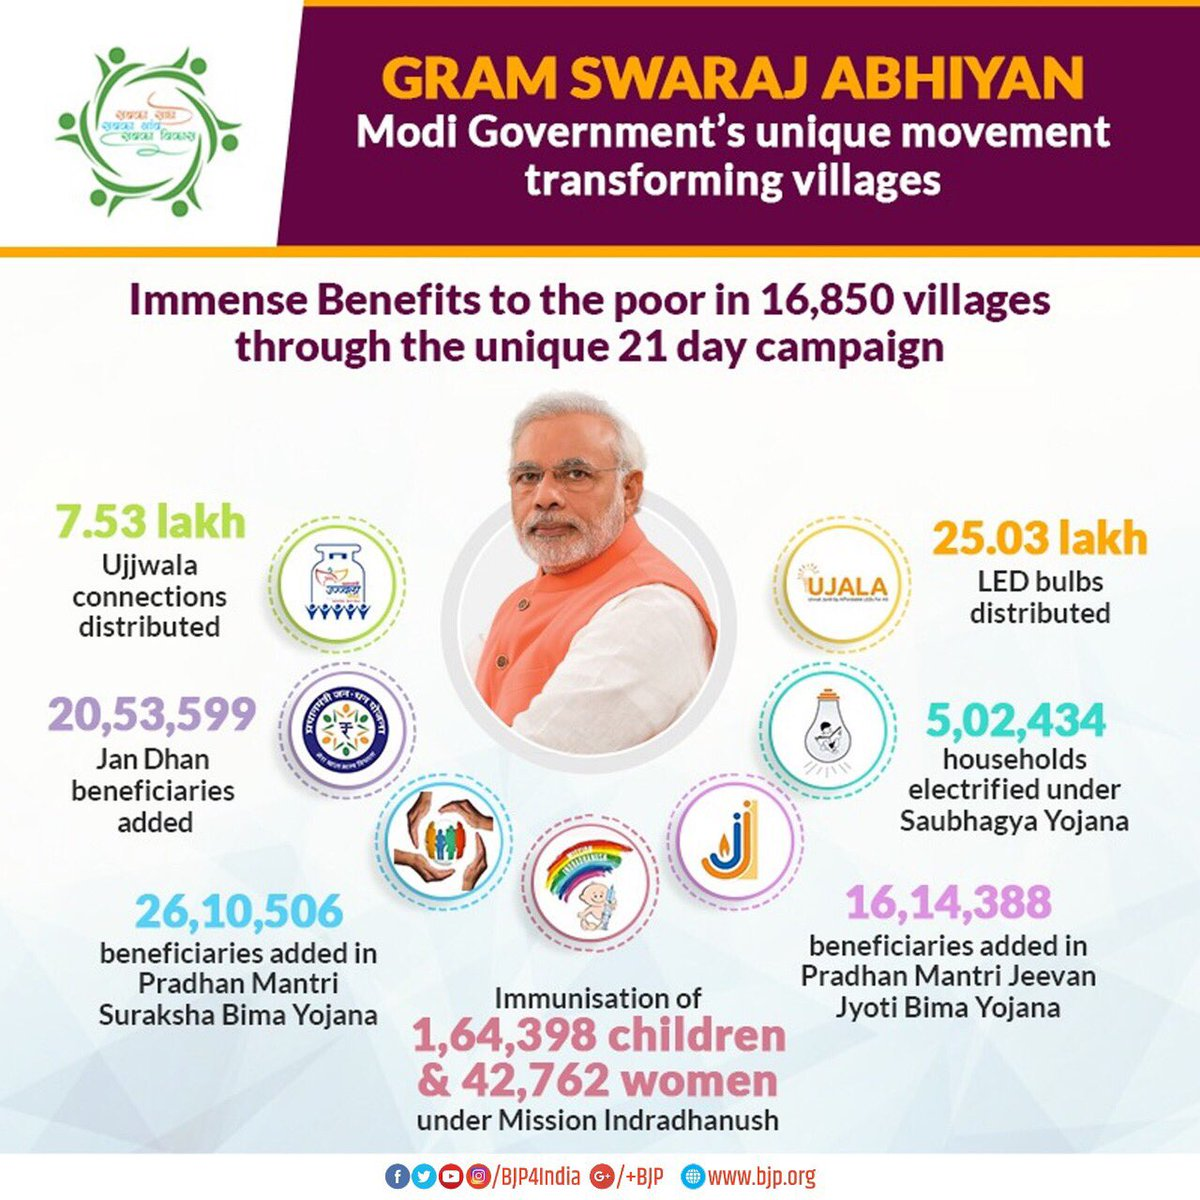 A summary of how Modi Government's unique #GramSwarajAbhiyaan spanning 21 days has benefitted the poor and marginalised in 16,850 villages.